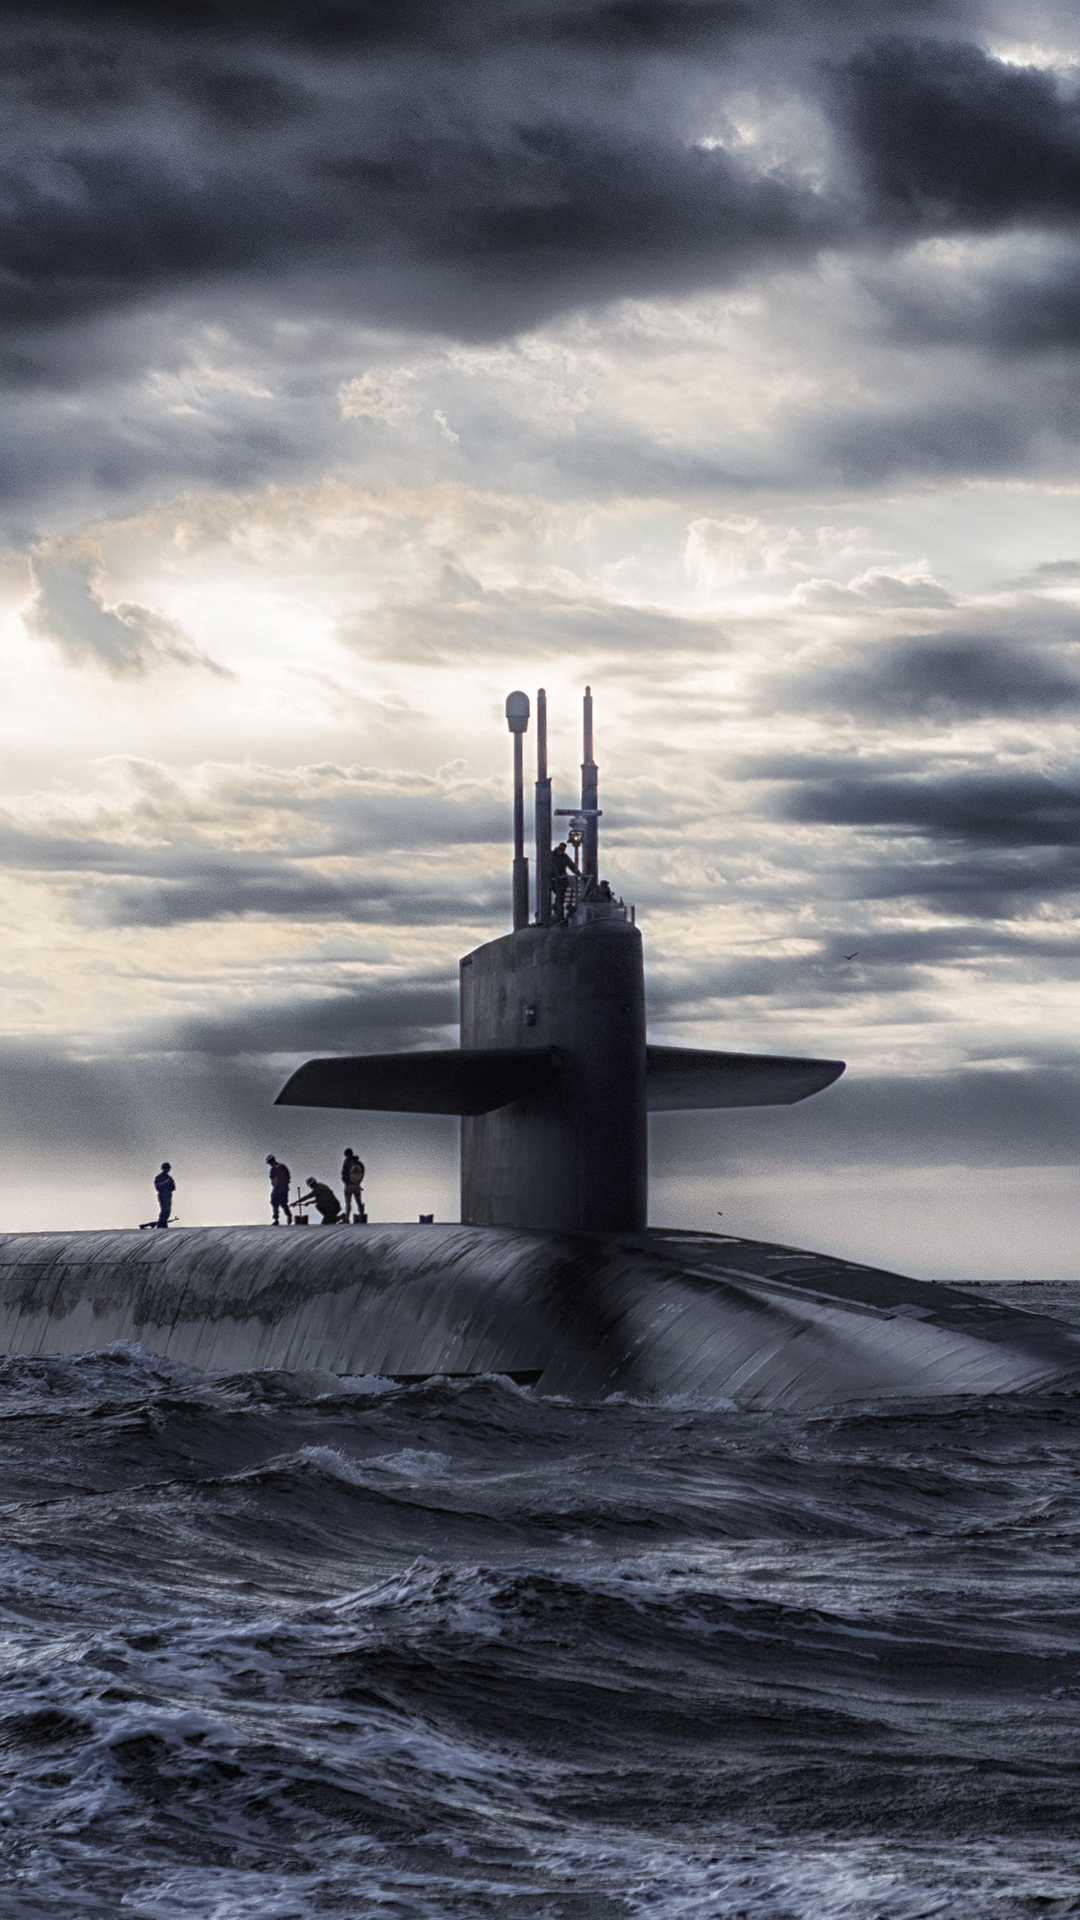 Submarine Wallpapers - Wallpaper Cave